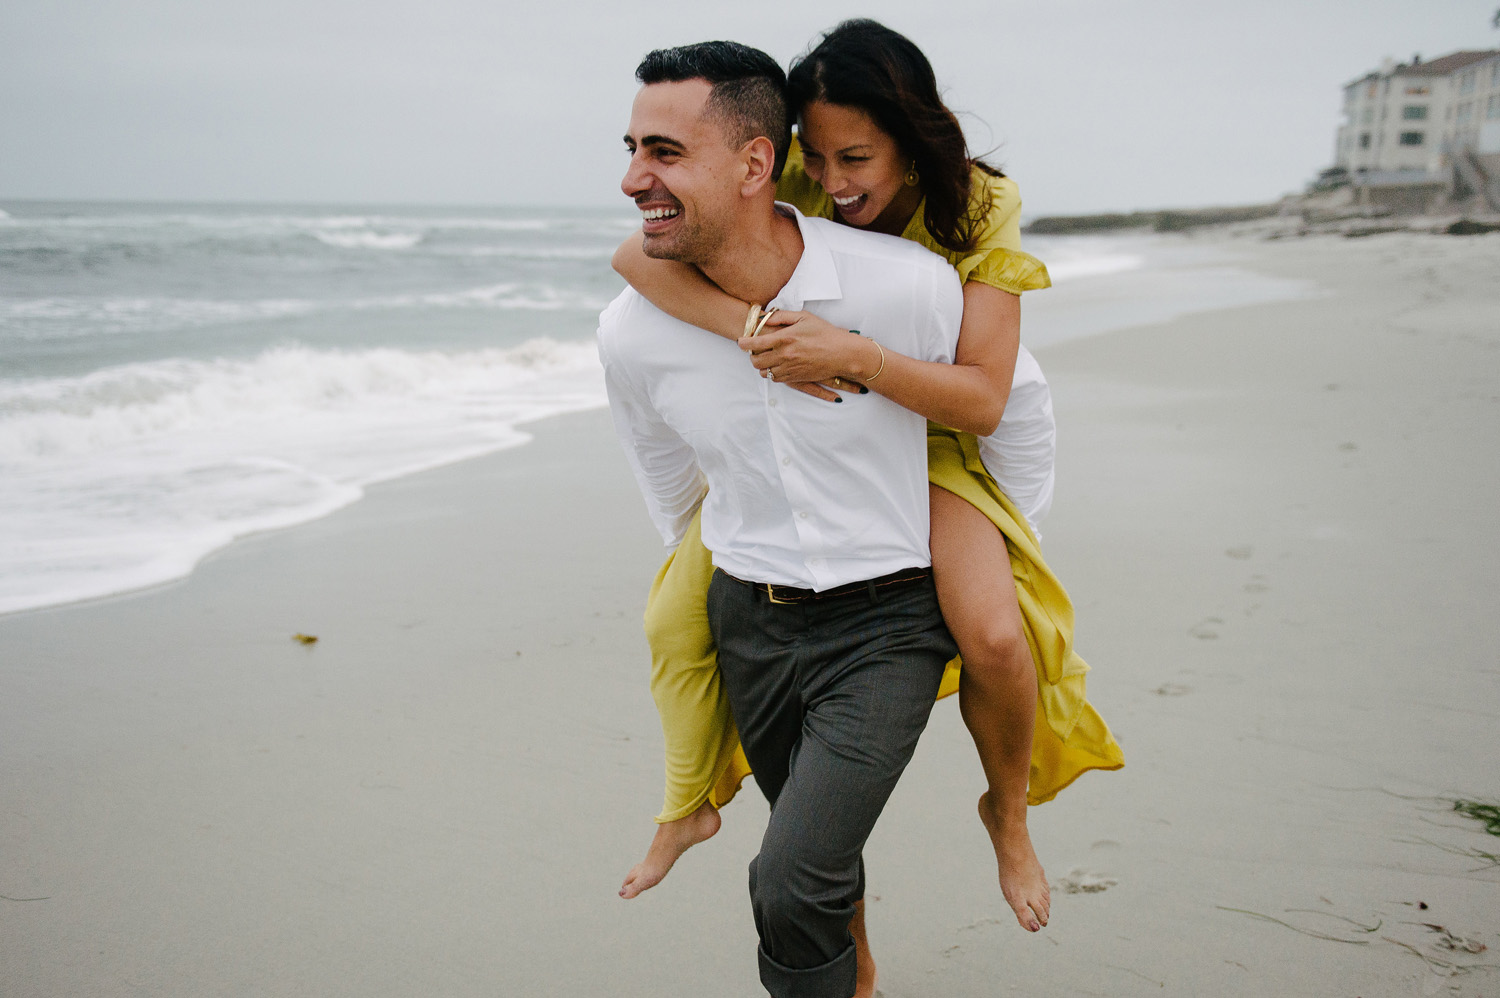 man carries fiancee on back on sand at marine street beach in la jolla